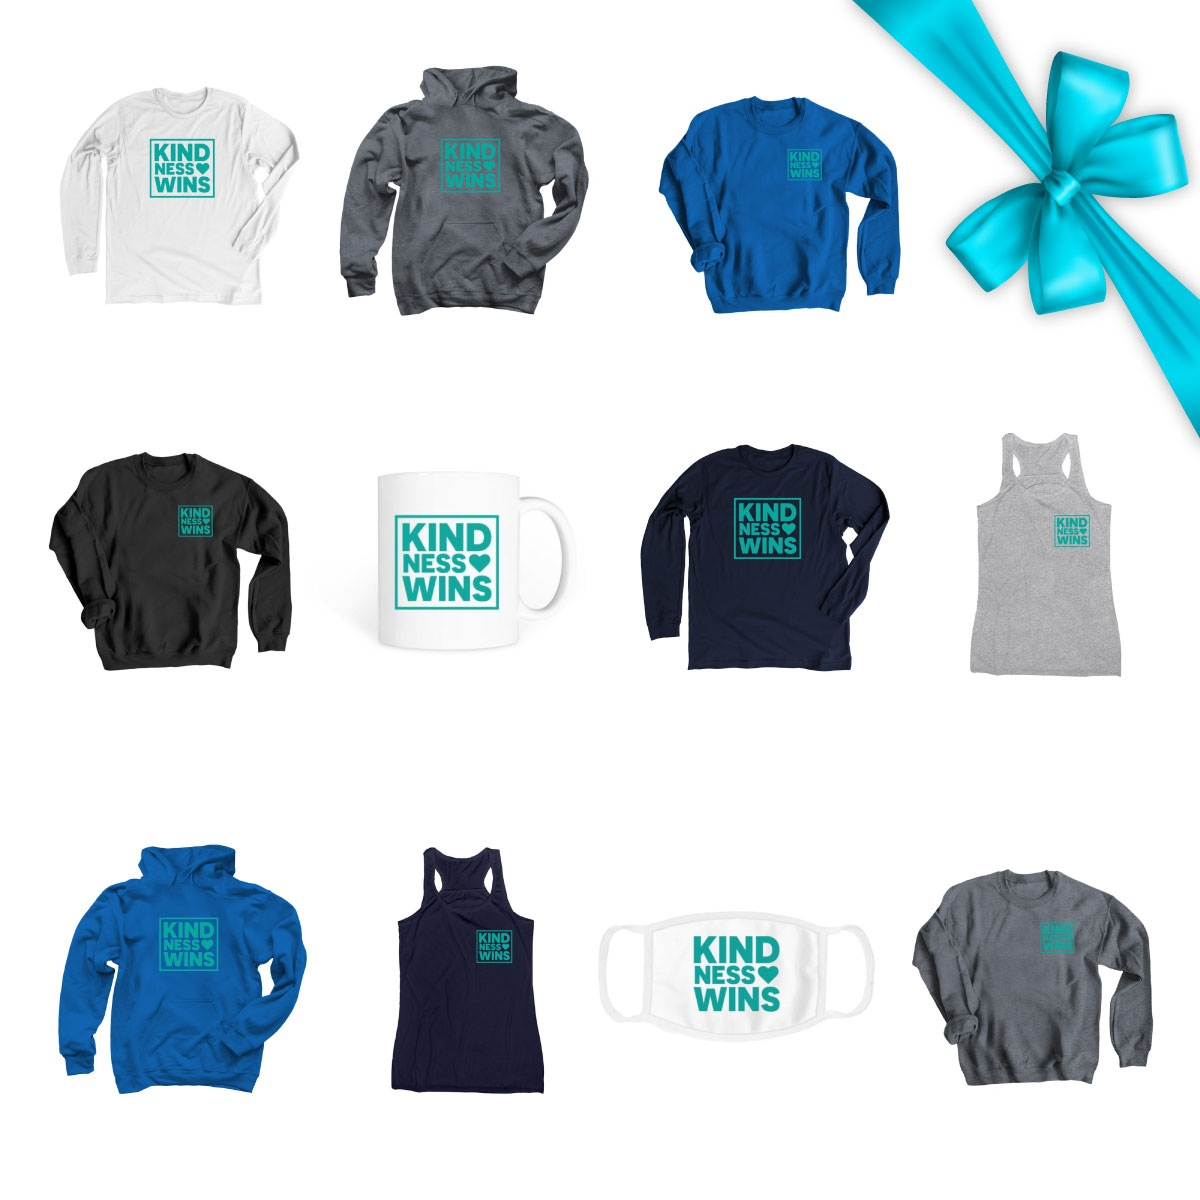 """Tis the season to spread some #kindness! 🎁  Shop our Kindness Wins store for everyone who made your """"good"""" list this year. Proceeds  go back to @Madison_Keys @MikaelaShiffrin @OksanaMasters initiatives to spread kindness to the masses."""